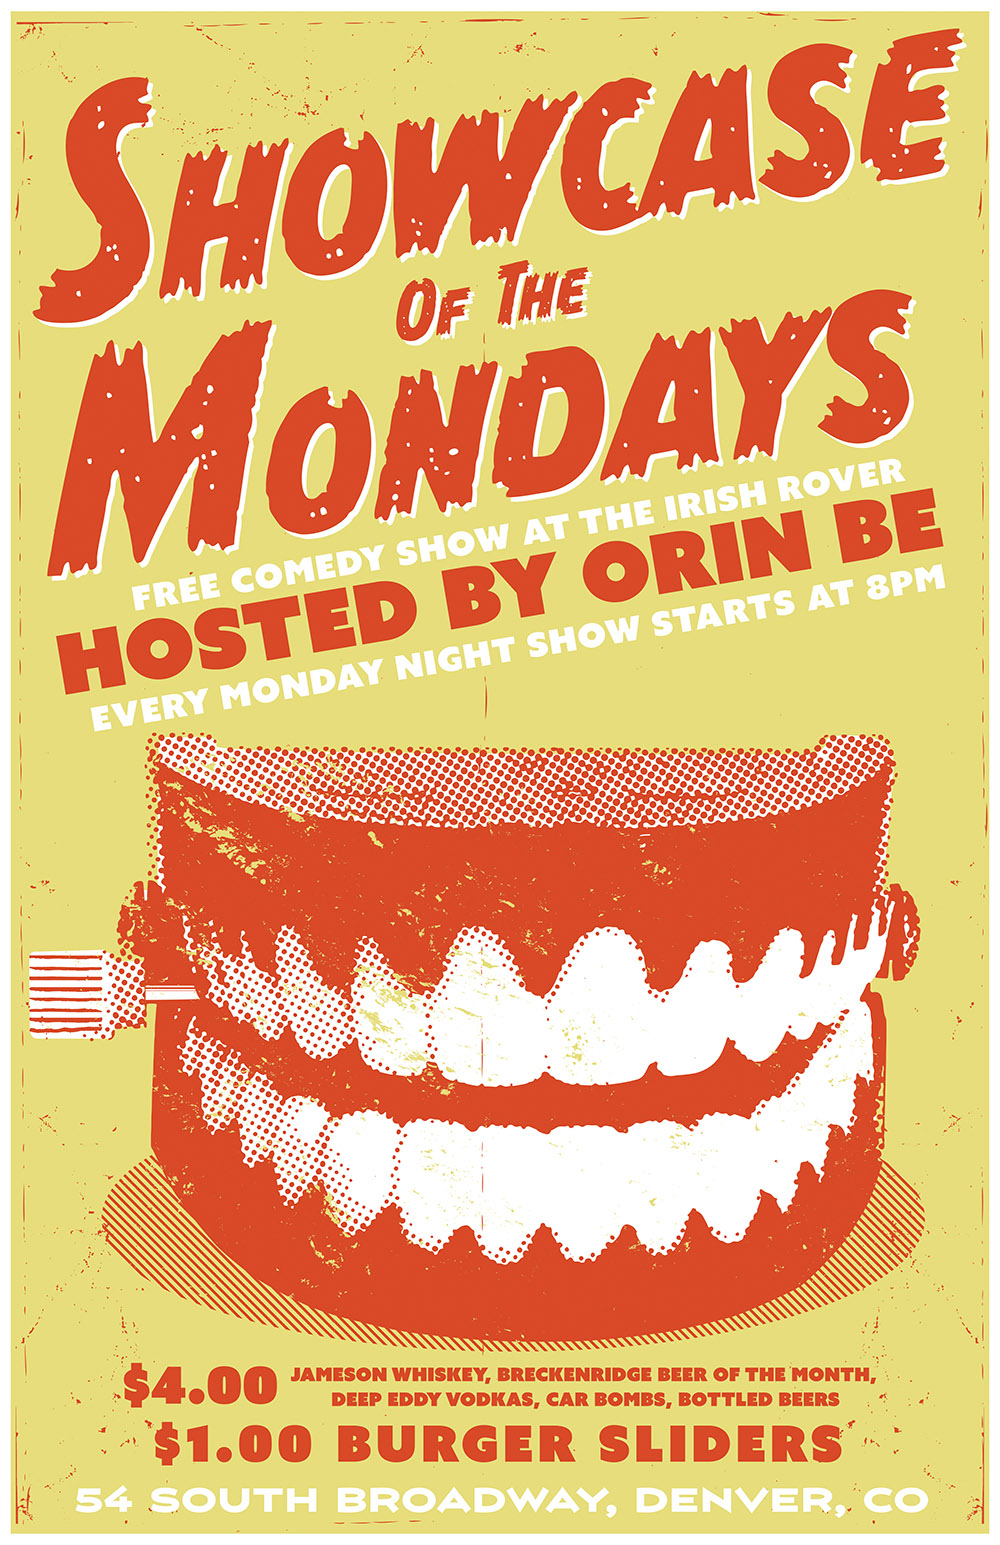 free stand up comedy show denver every monday nights